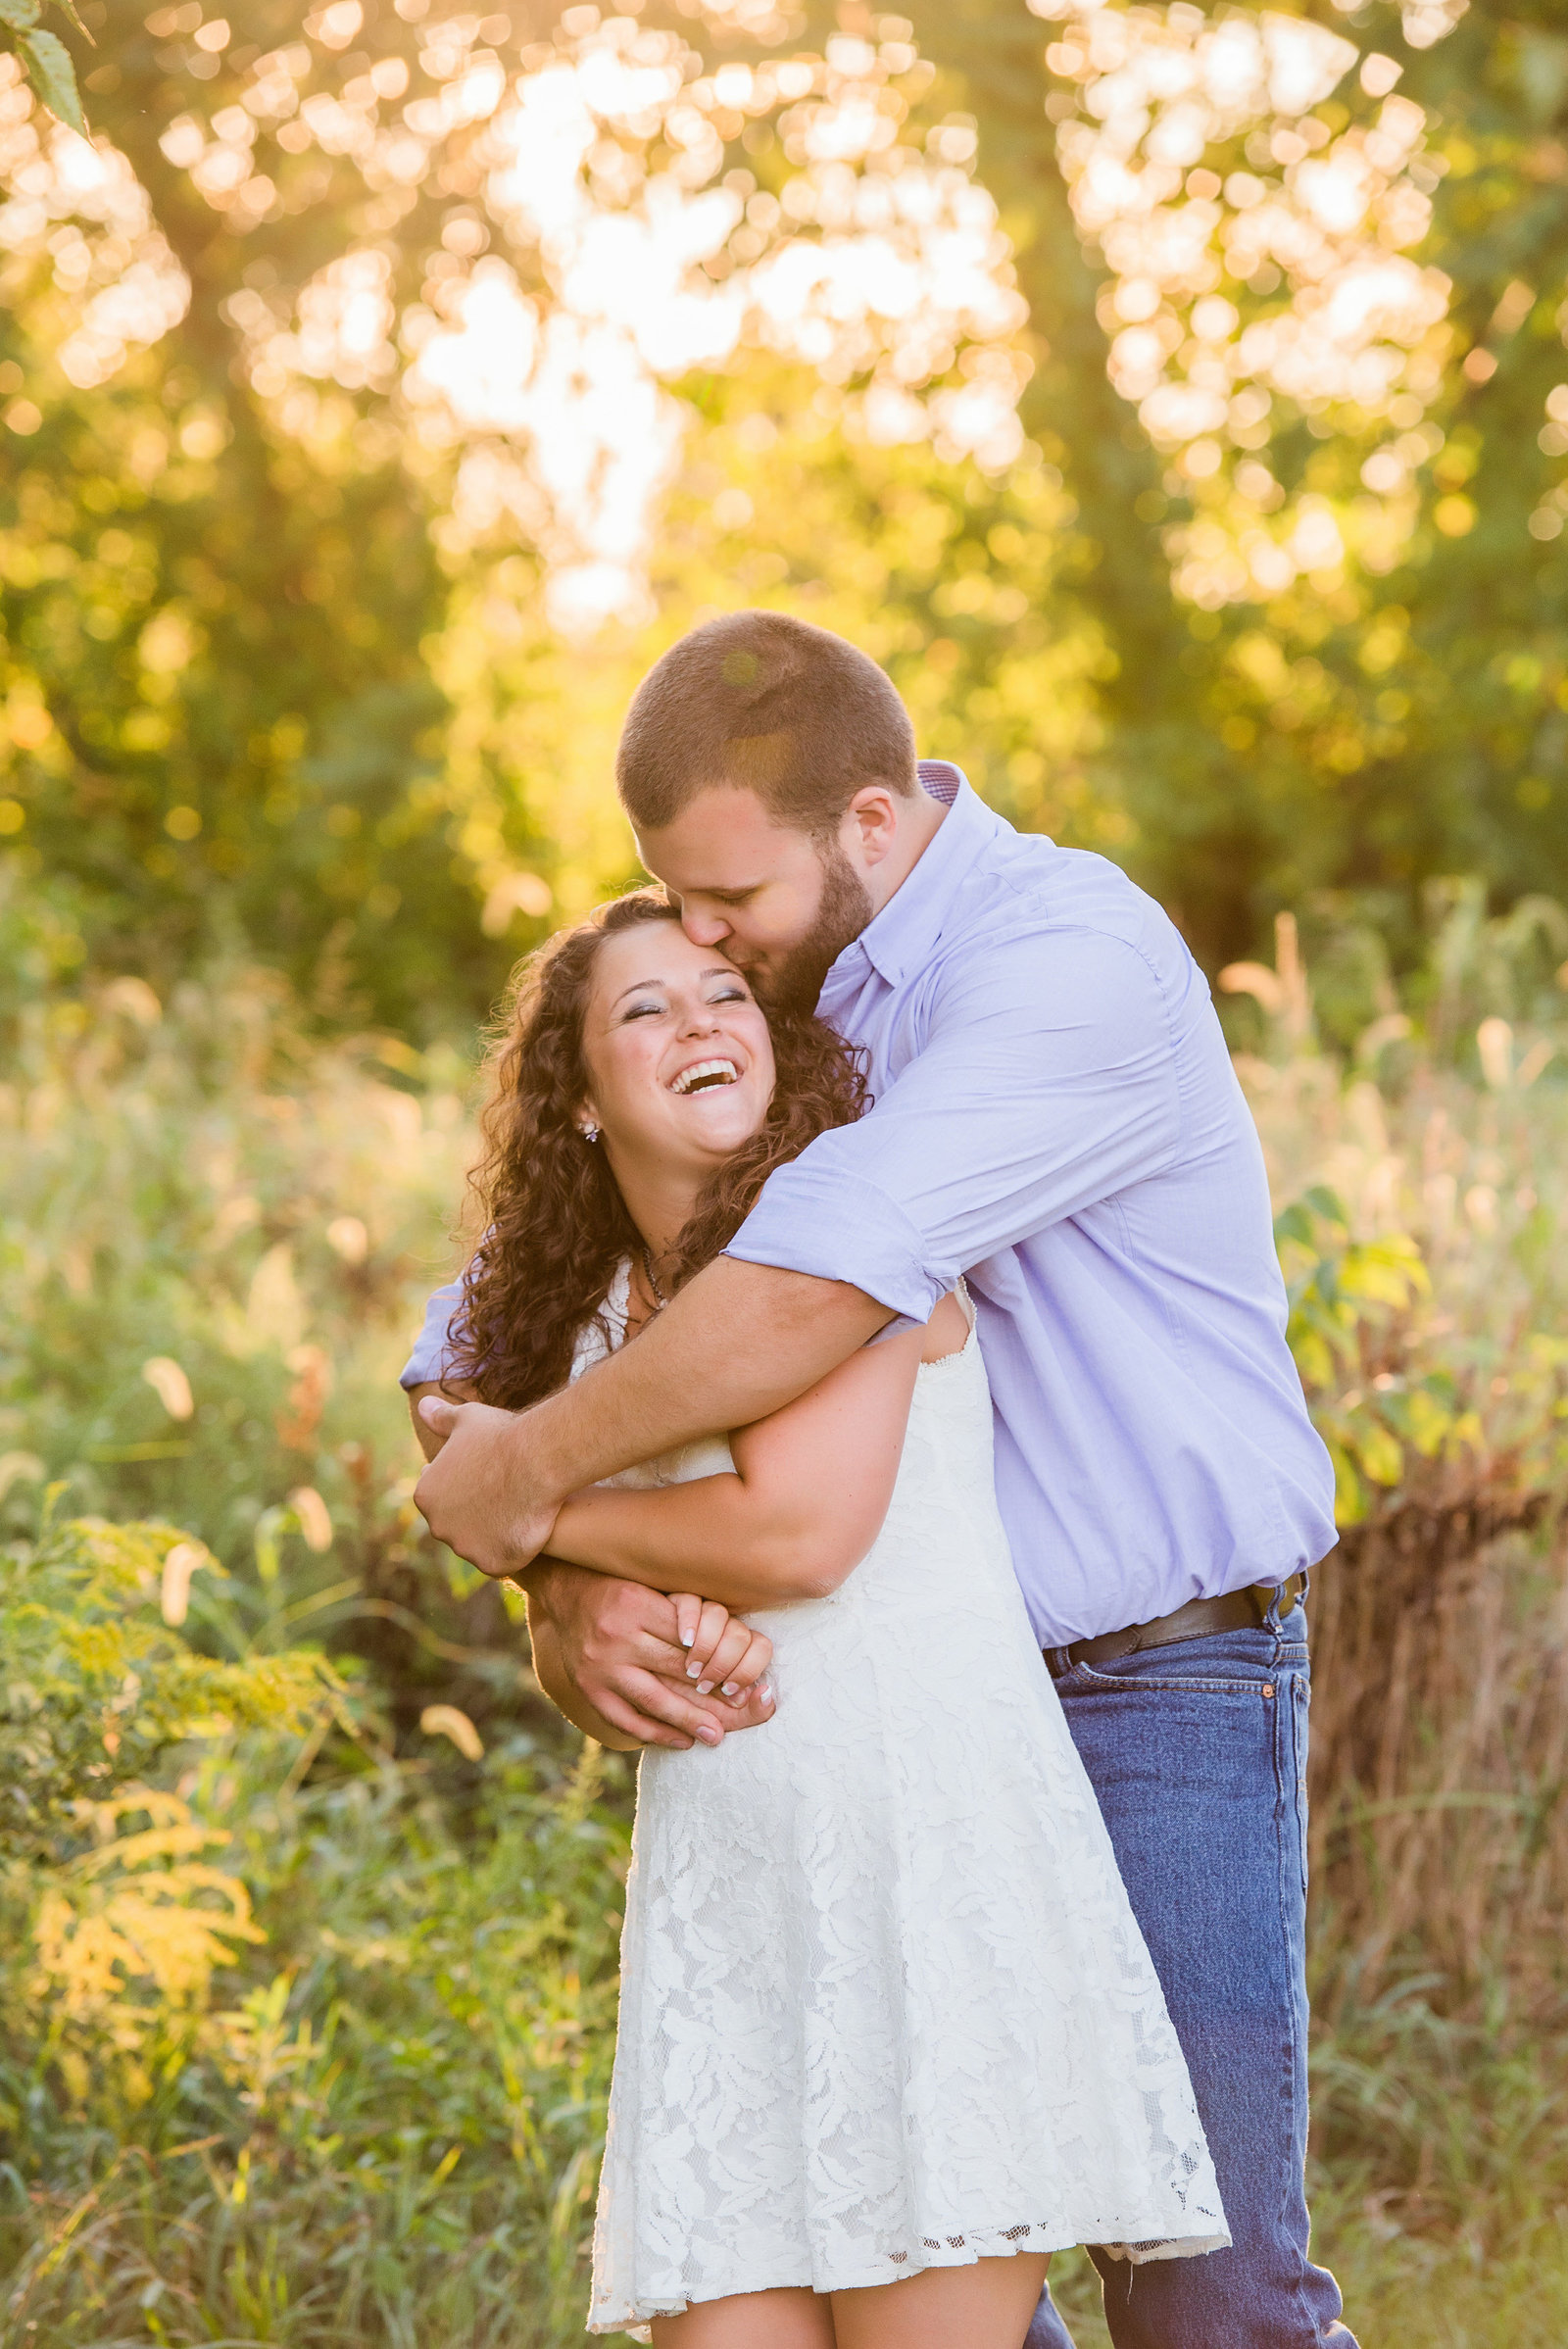 NJ_Rustic_Engagement_Photography105